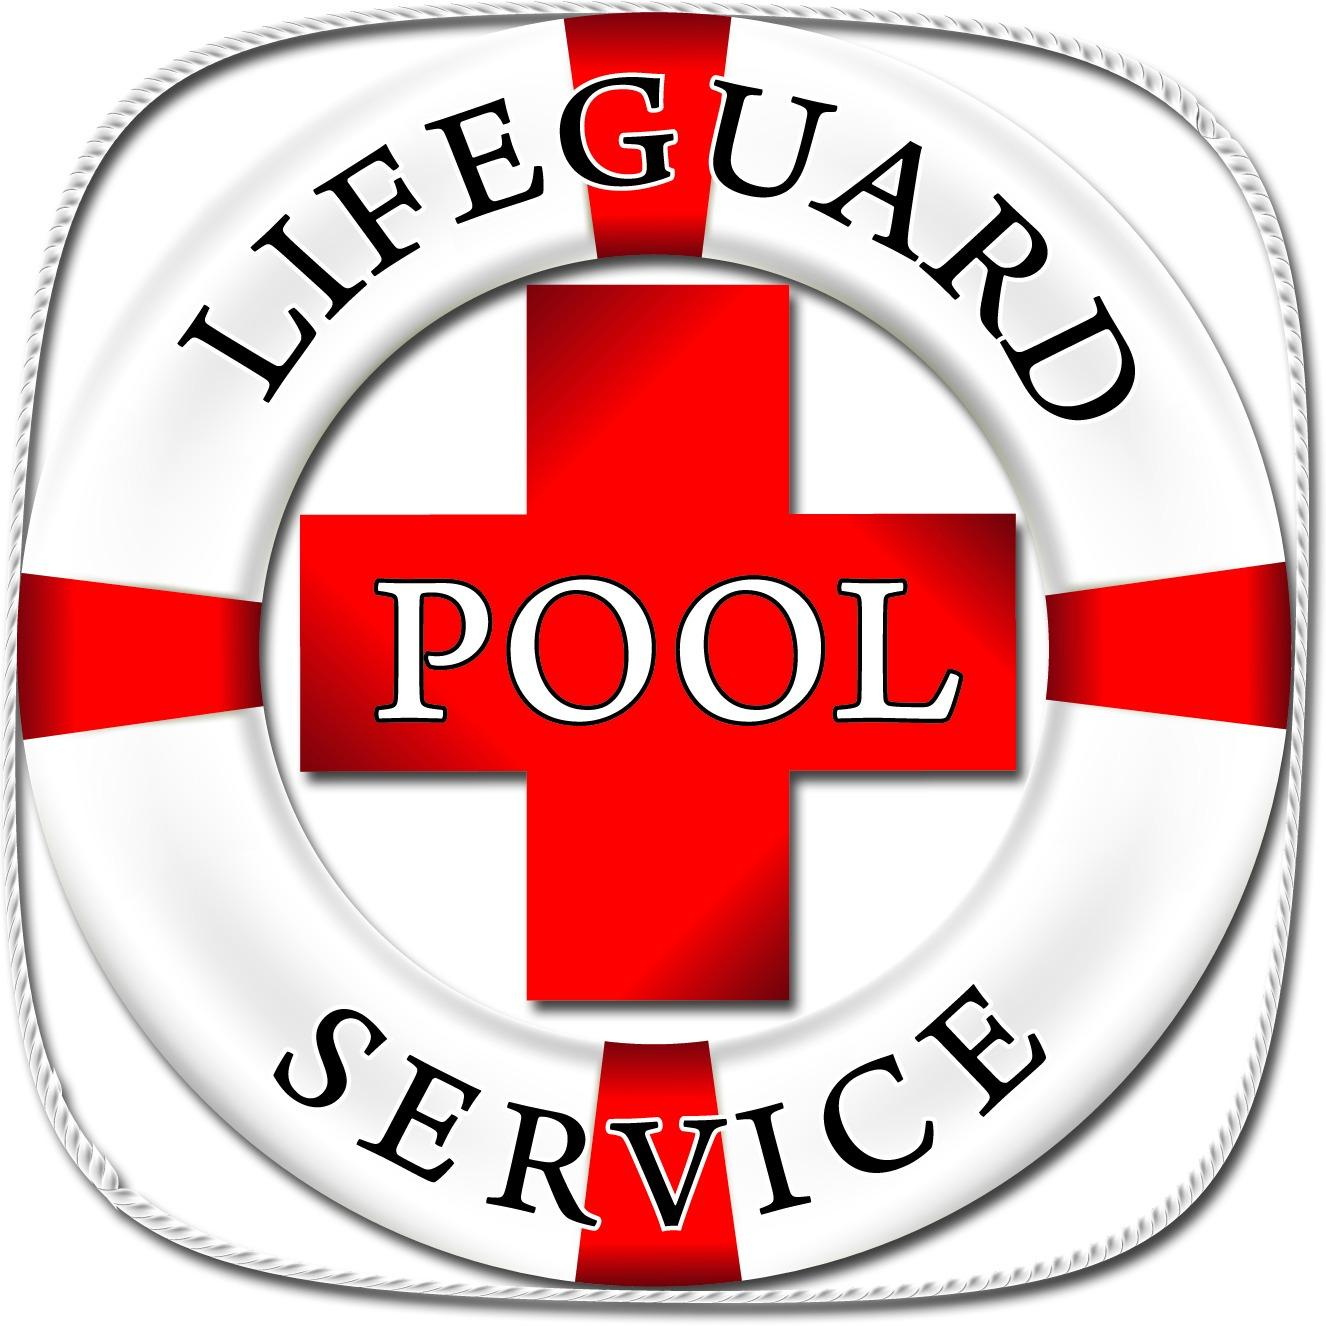 Lifeguard pool service in fresno ca 93711 Swimming pool water delivery service near me